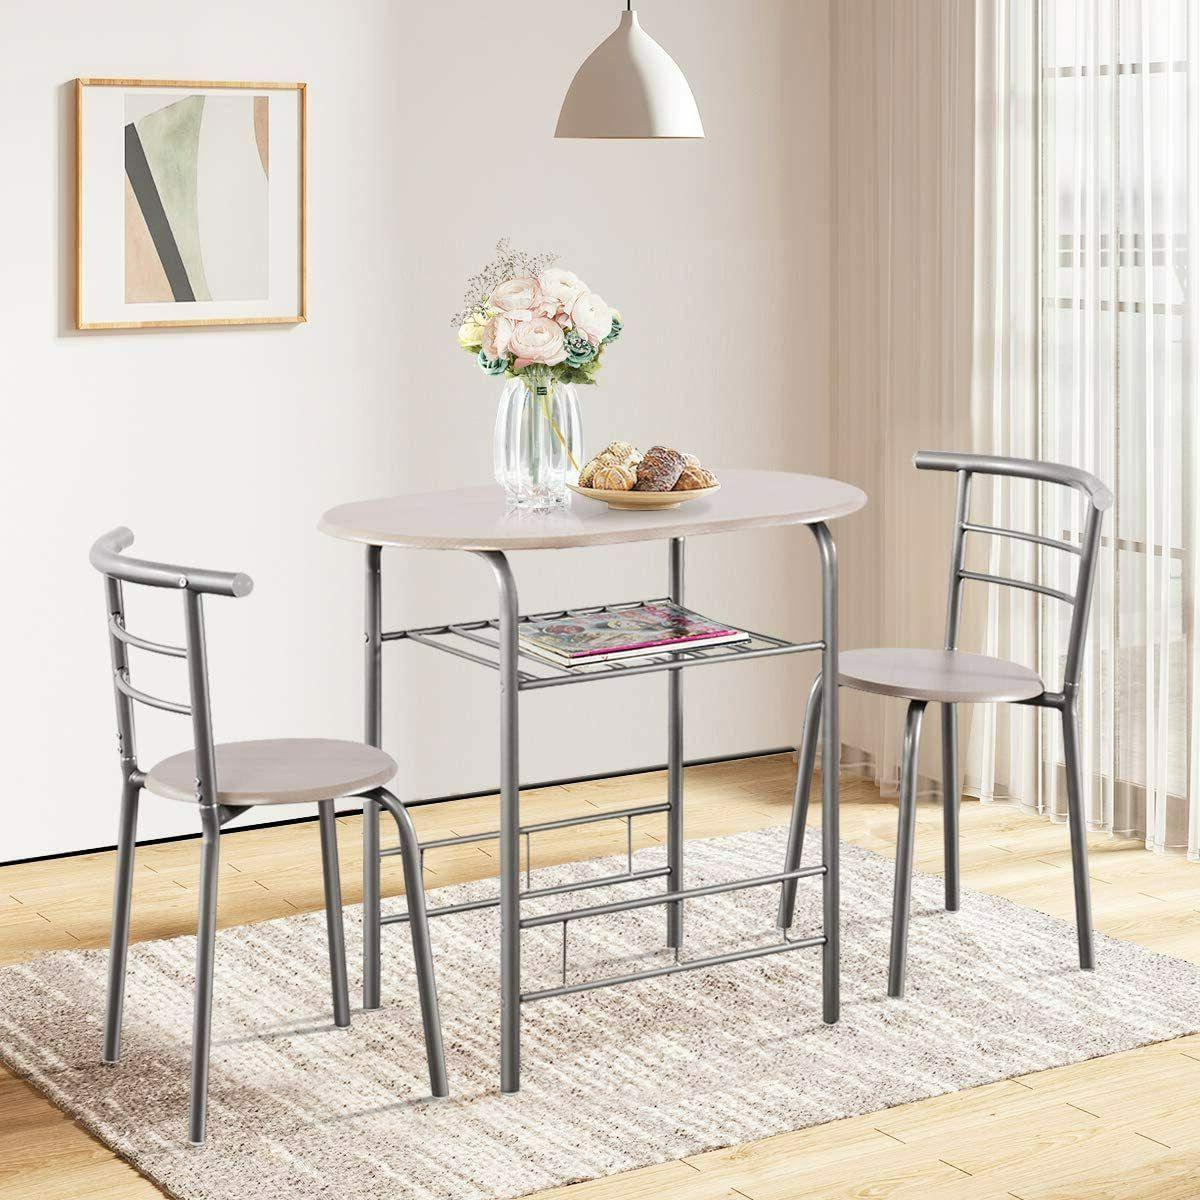 Dining Set and 2 Chairs PCS Bistro Furniture